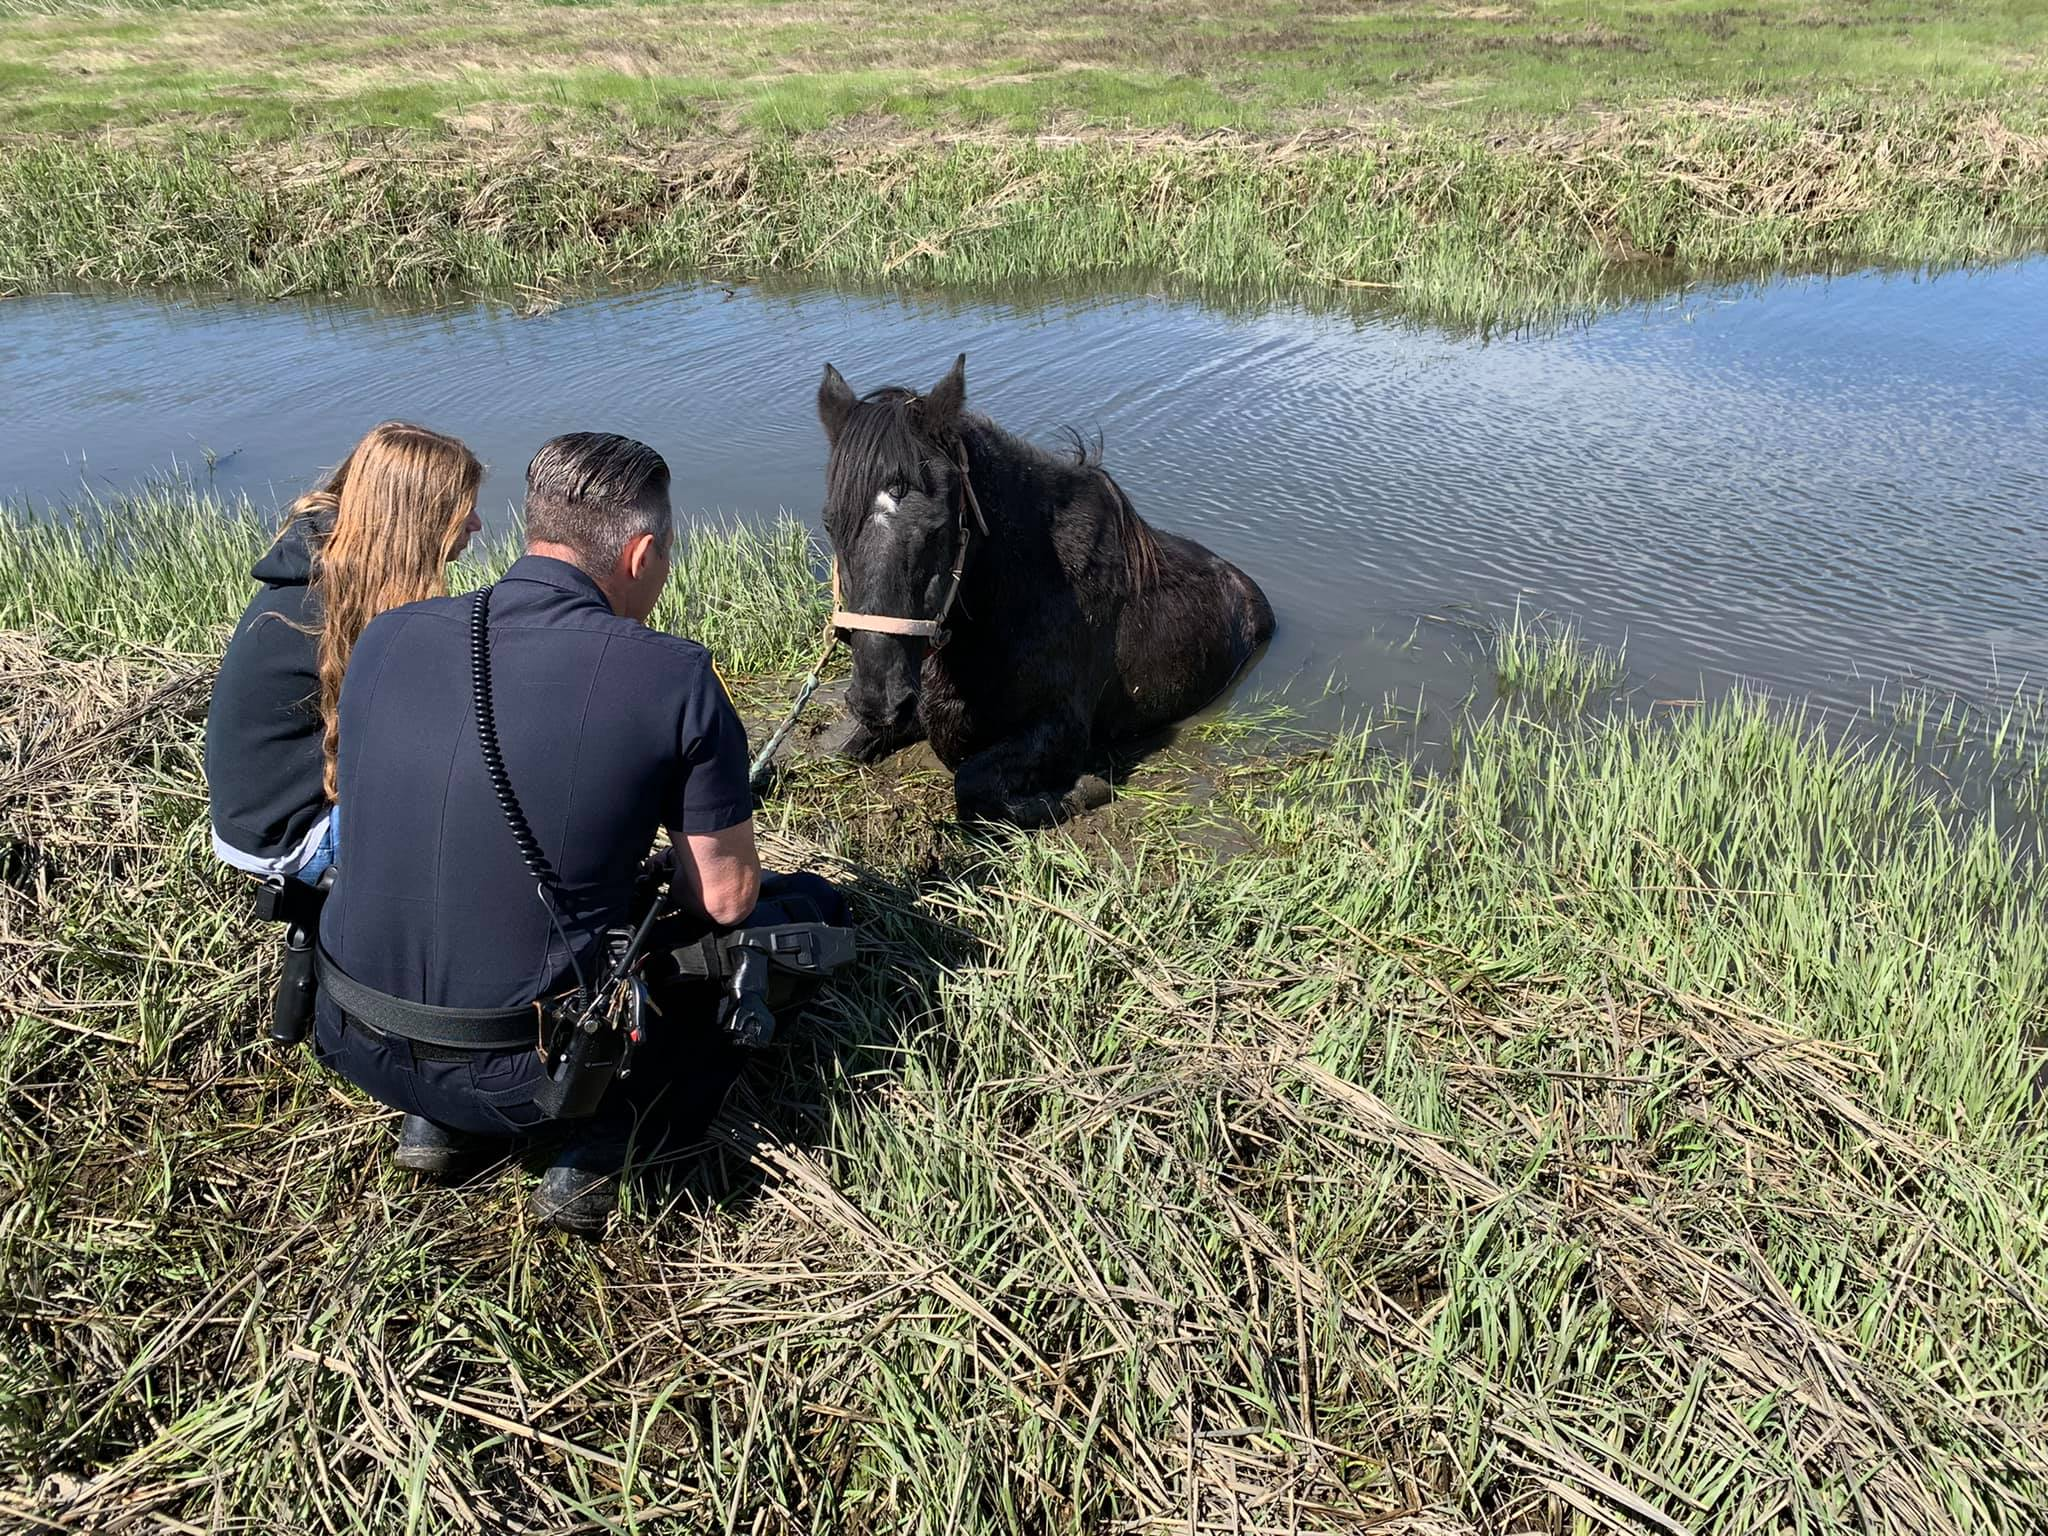 TELL ME SOMETHING GOOD: An Unusual Animal Rescue In Branford